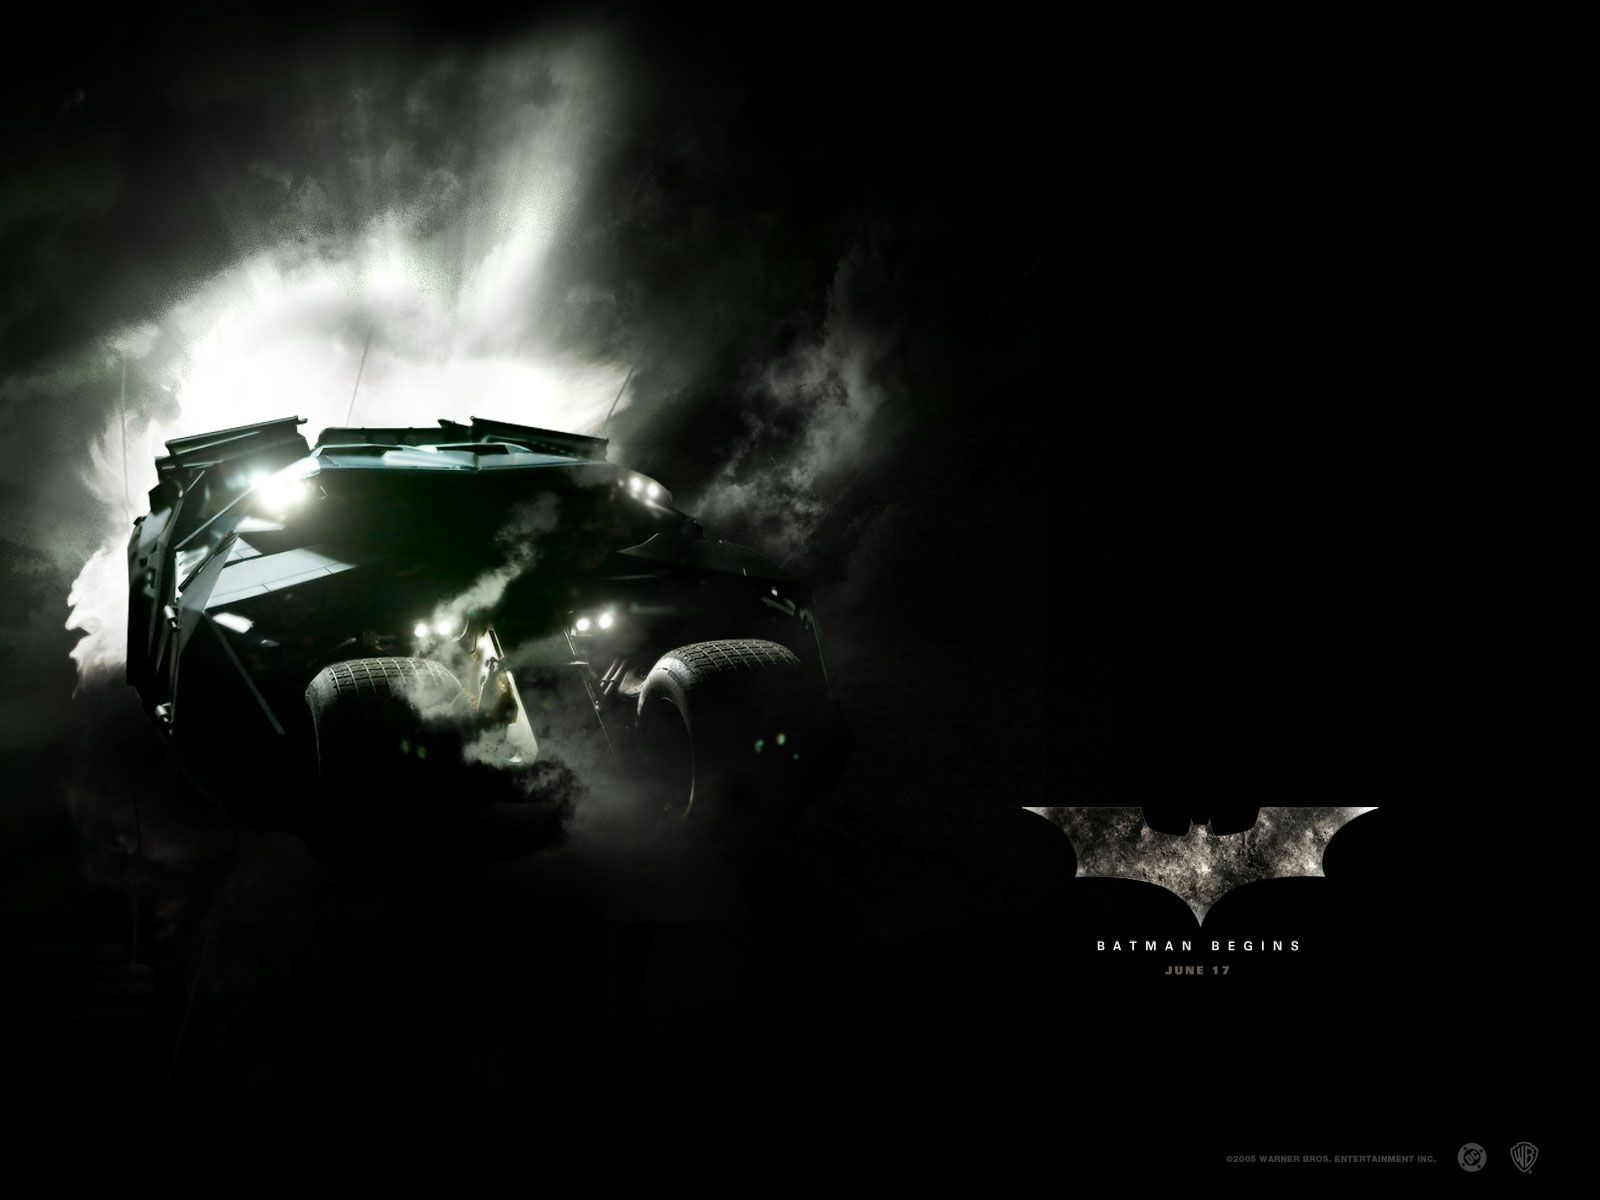 Batmobile Batman Begins Poster Wallpaper 1600x1200